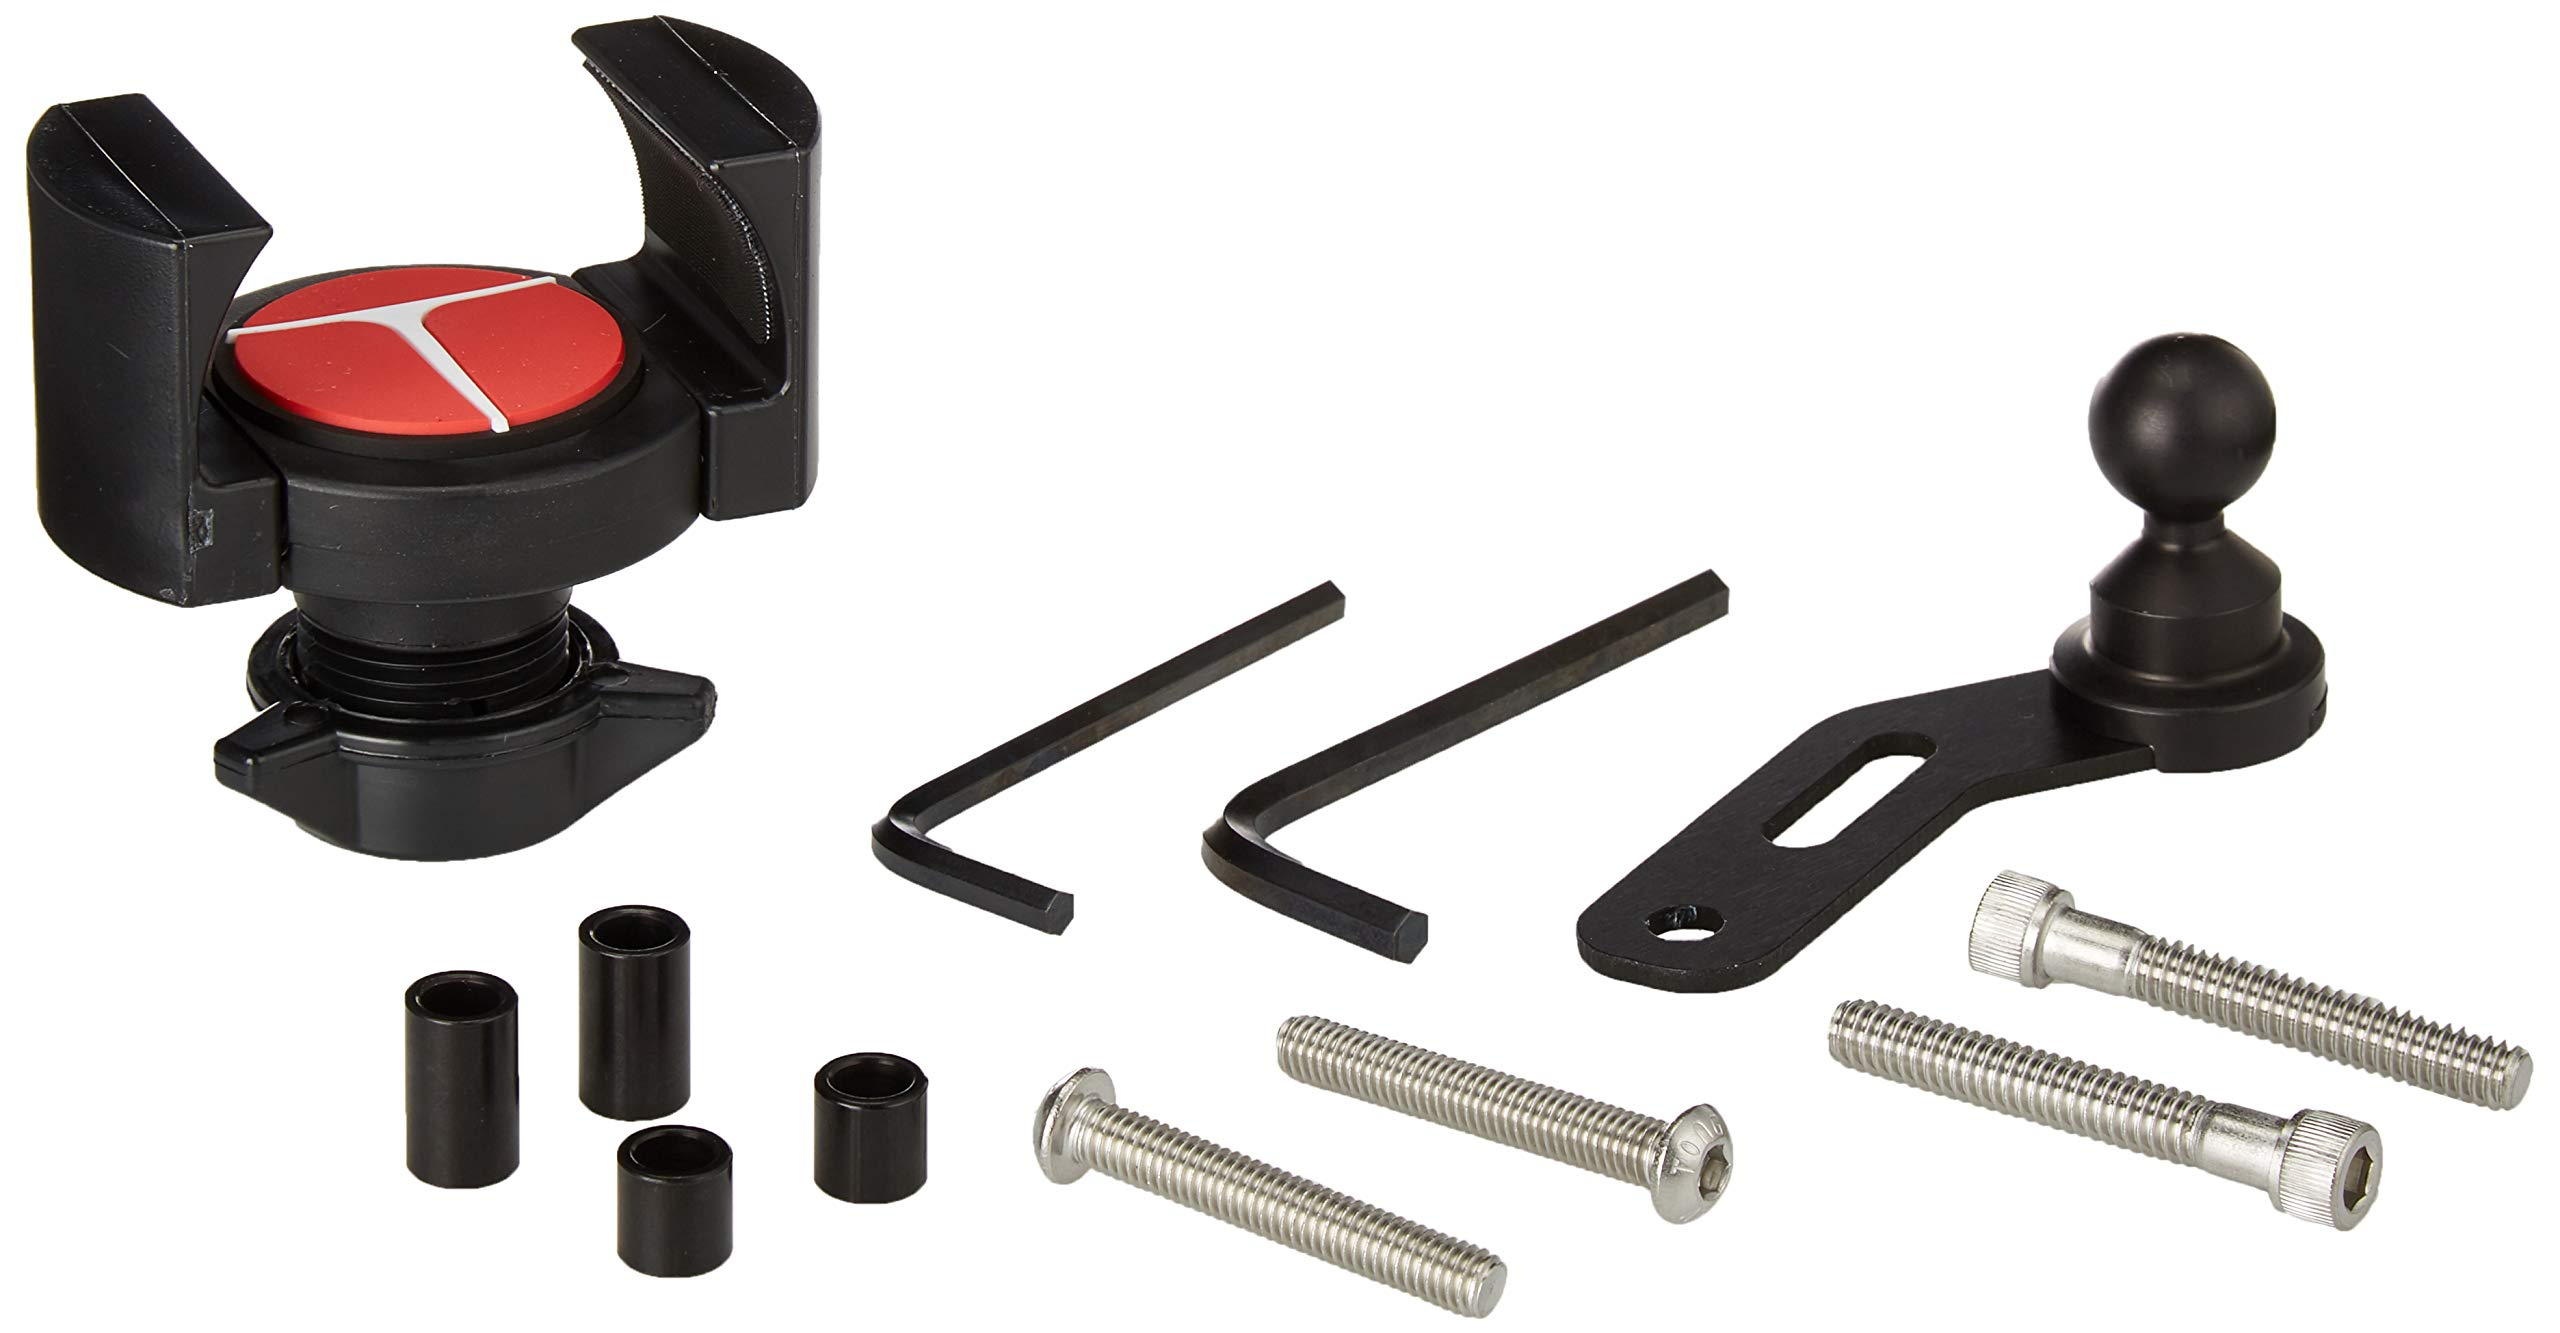 Universal Motorcycle Control Mount - Techmount 4-31001-B-TechGripper - The Most Dependable Holder for iPhone / GPS / MP3 Player - Extra Strong and Reliable - Adjustable to Fit Most Bikes and ALL Harleys